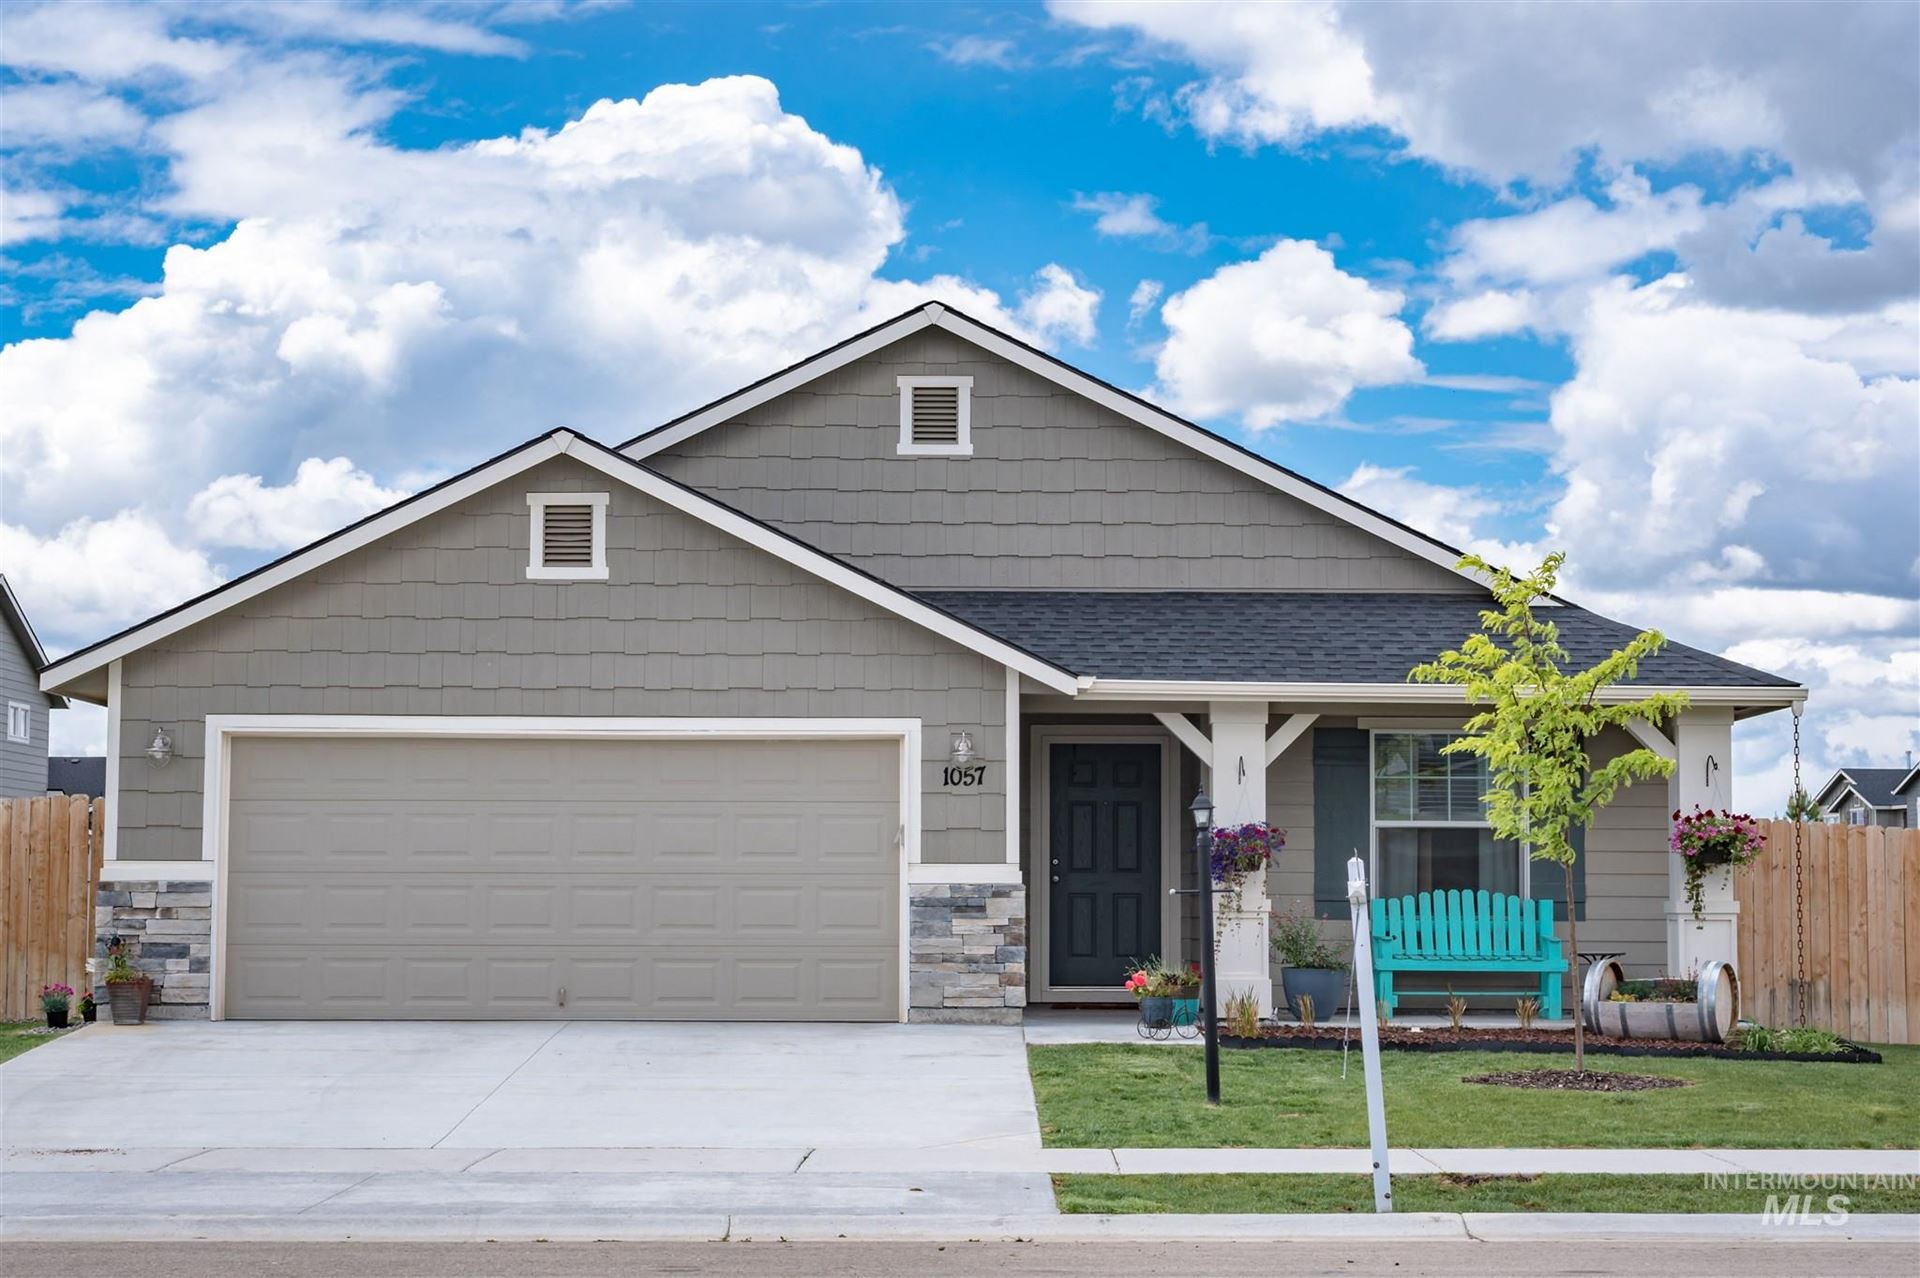 1057 Ione Ave., Middleton, ID 83644 - MLS#: 98767223